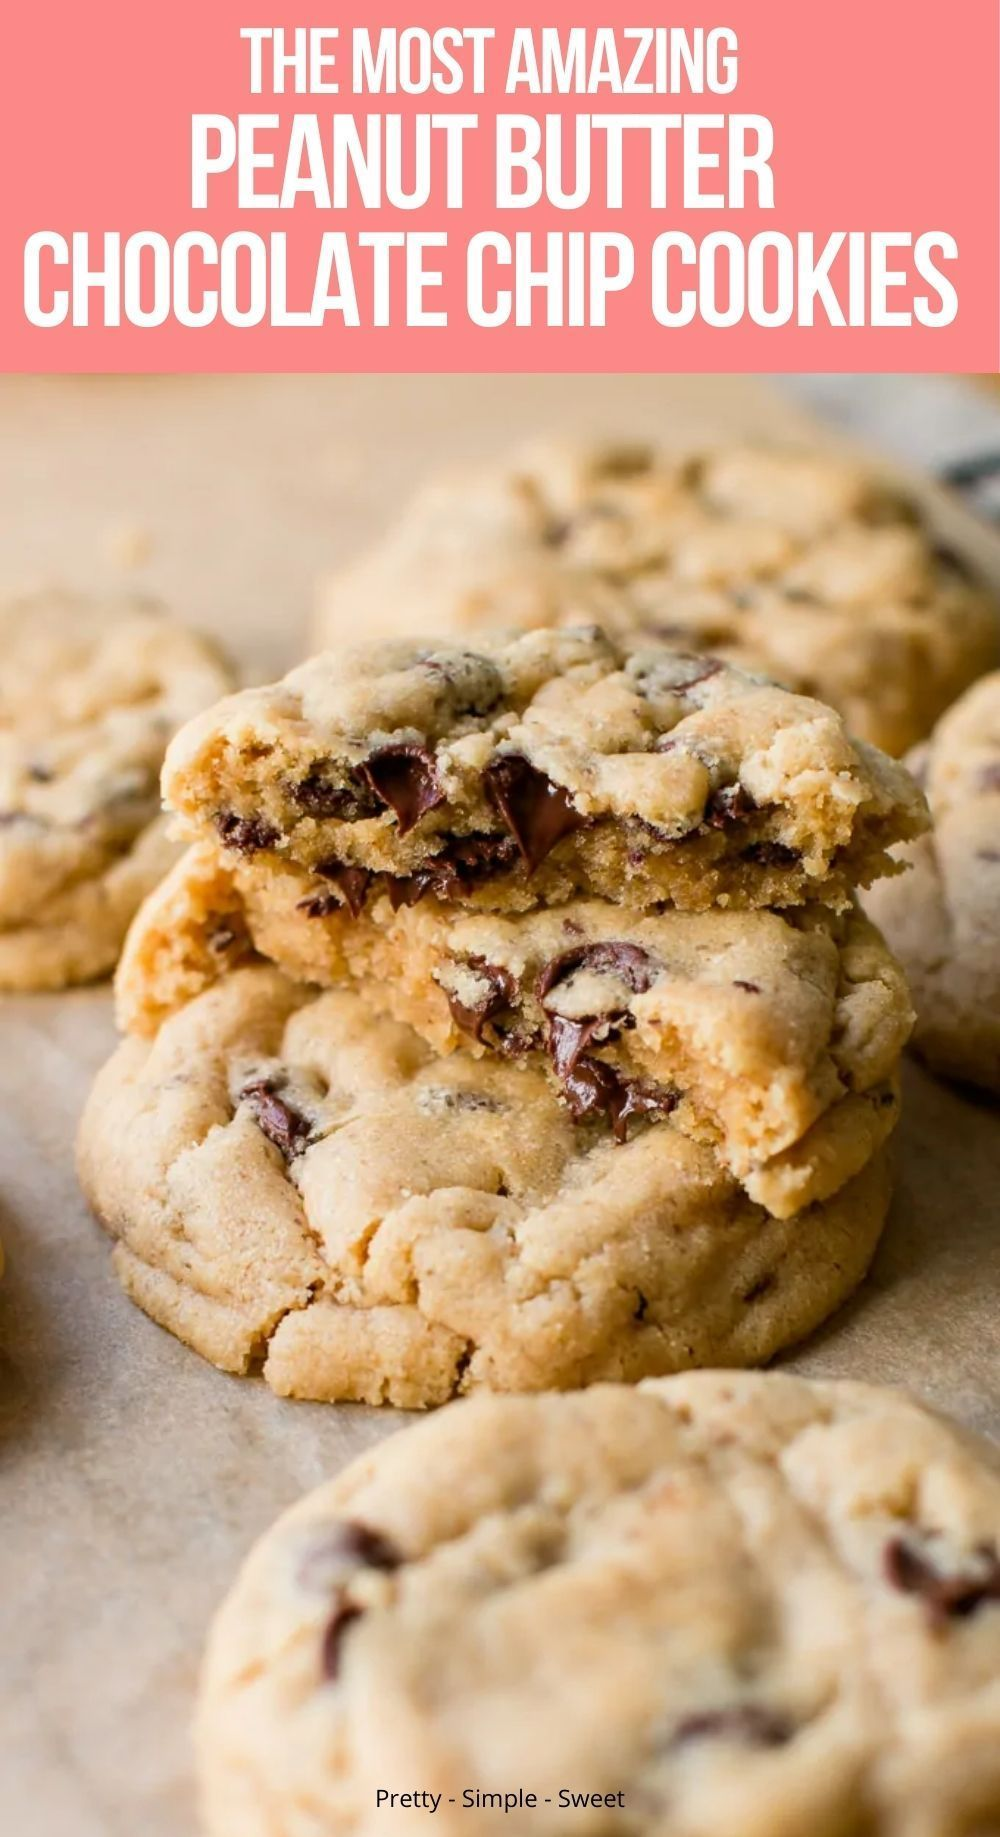 These soft bakery-style peanut butter chocolate chip cookies are packed with peanut butter flavor and loaded with chocolate chips. If you serve them warm, they will melt in your mouth! #cookies #easyrecipes #cookierecipes #peanutbutter